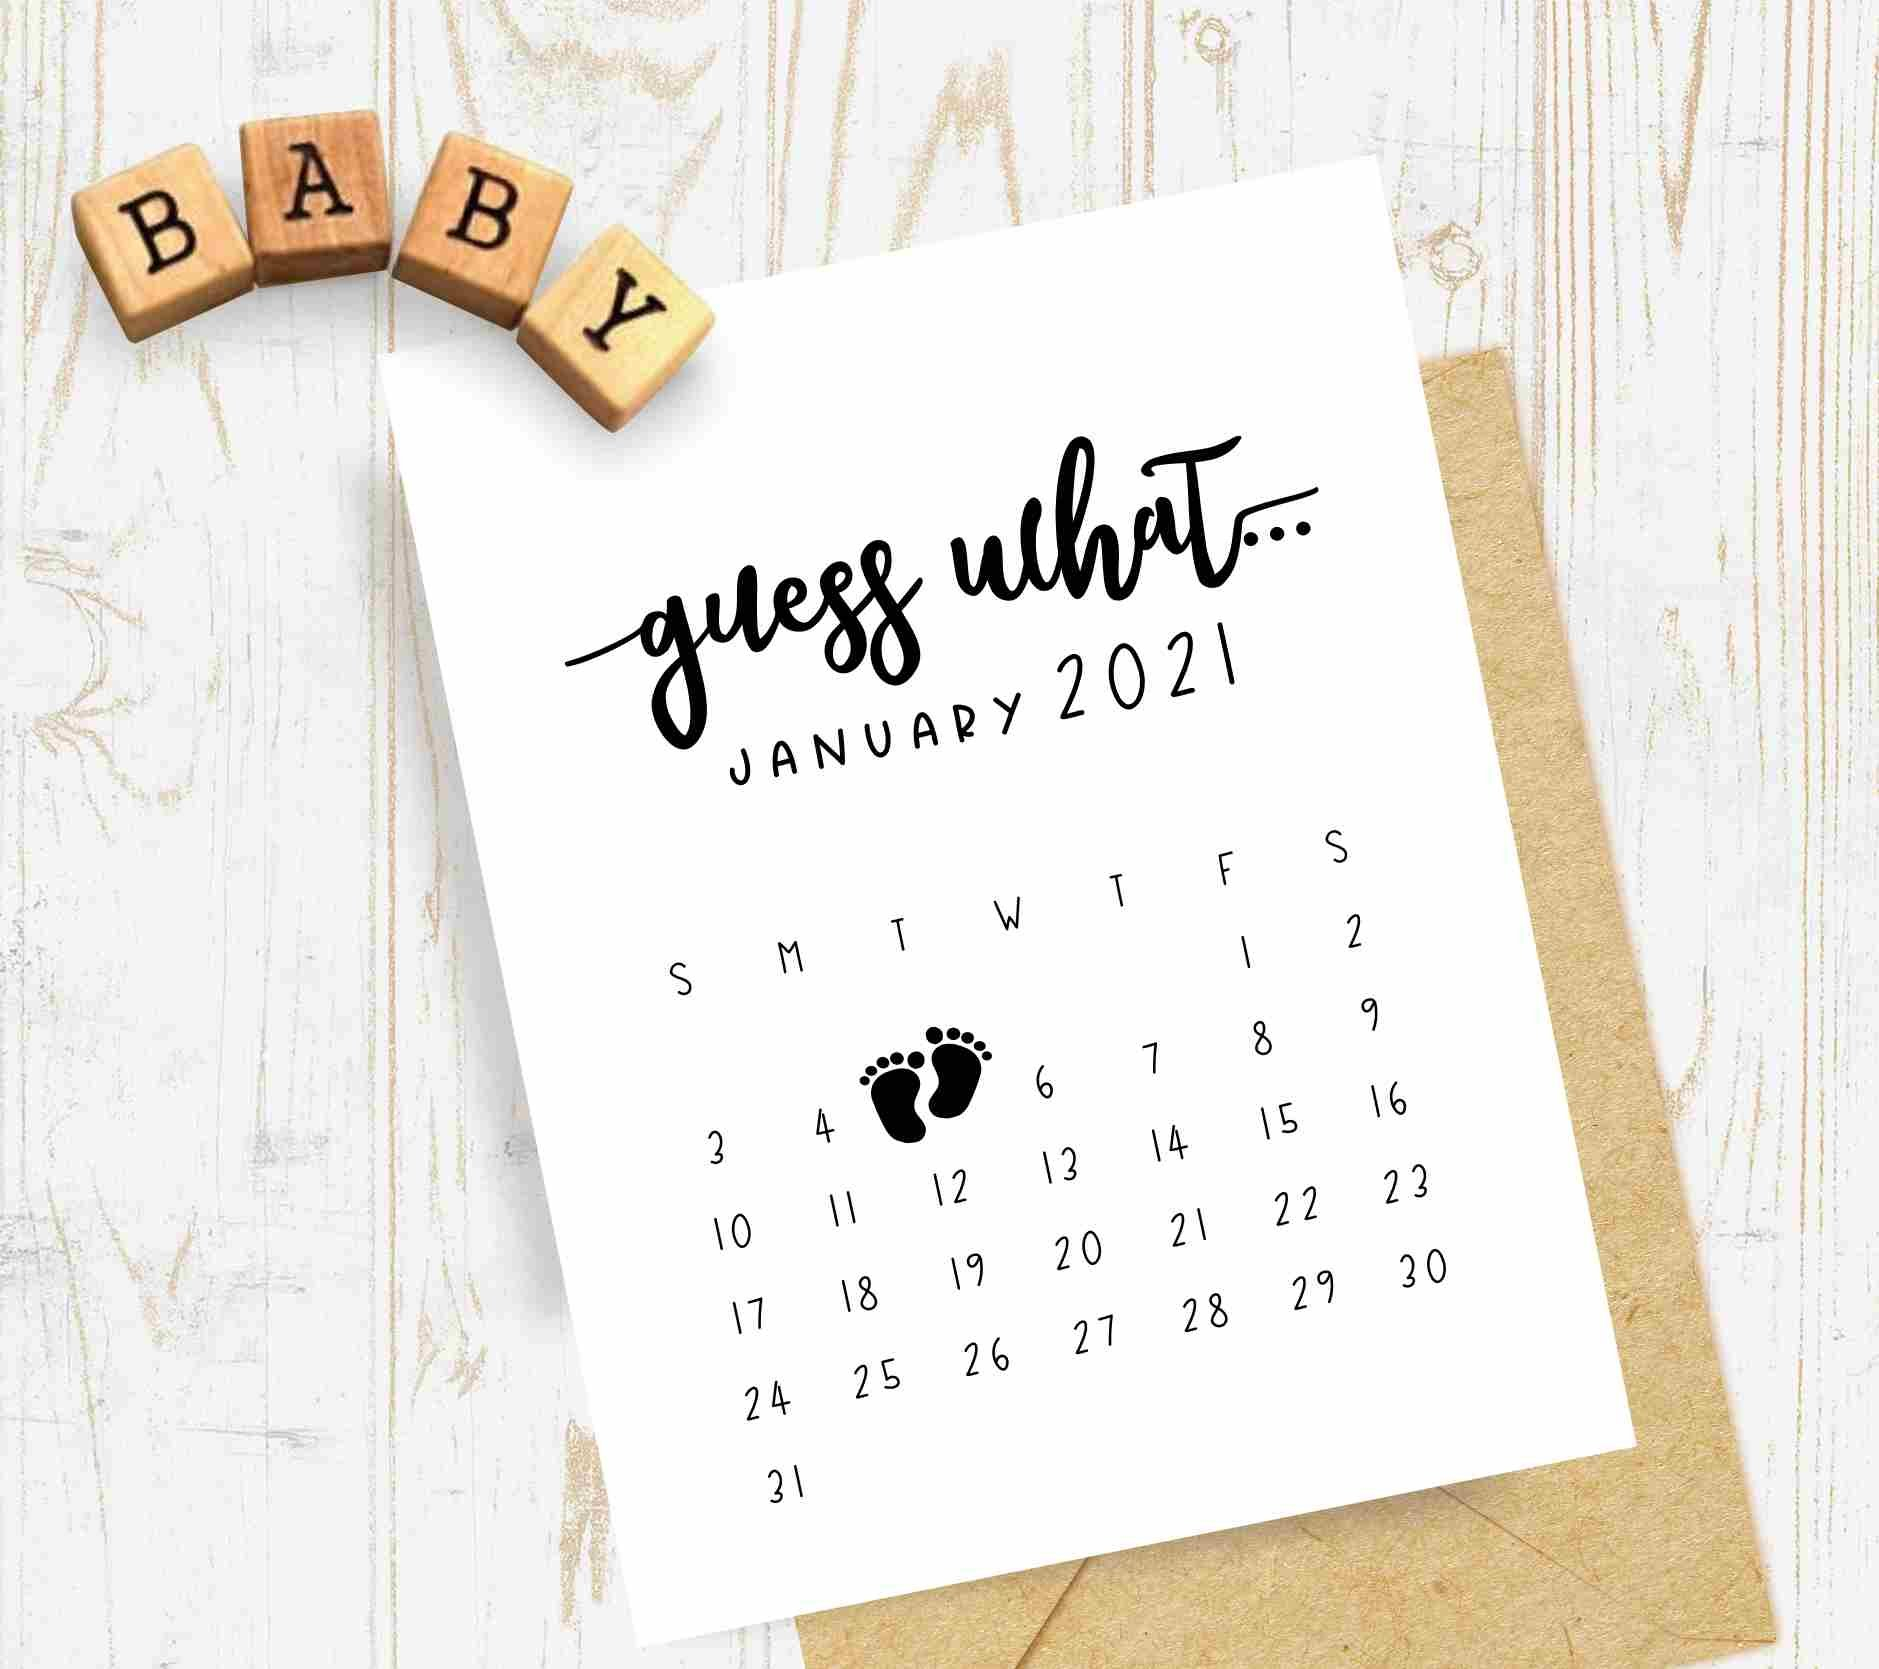 Pregnancy Announcement Calendar – Personalized Guess What Calendar Guess The Due Date Calendar